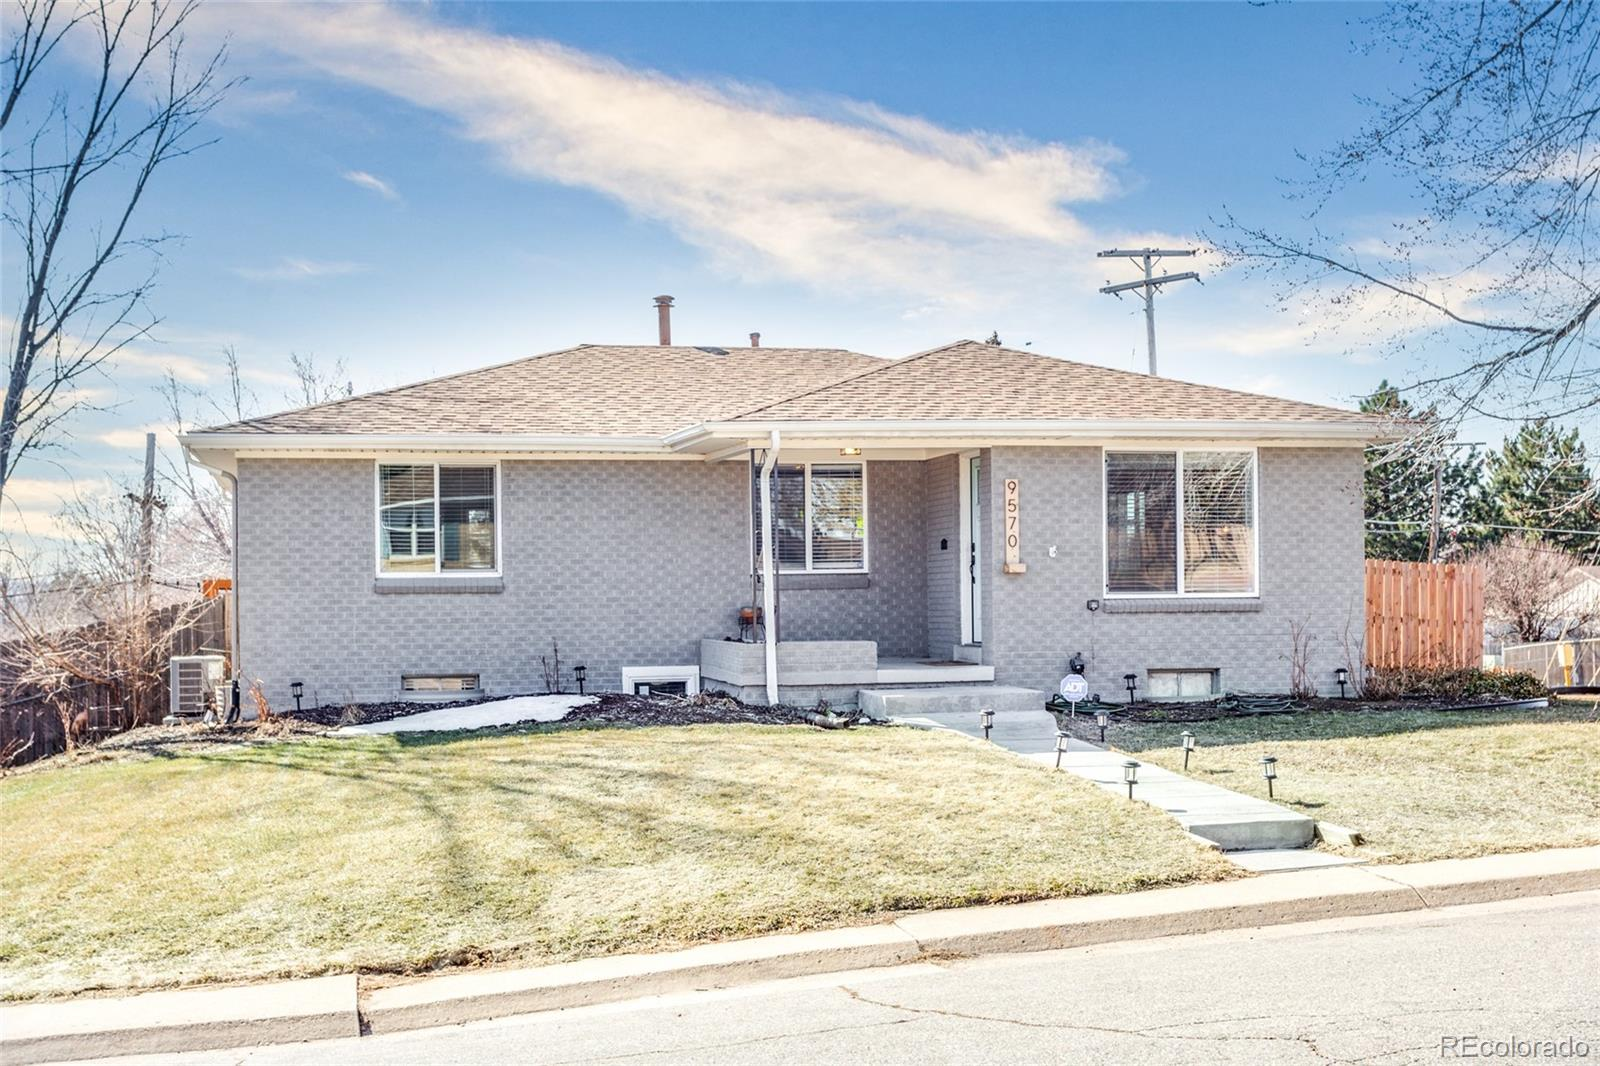 MLS# 4969690 - 1 - 9570 W 54th Place, Arvada, CO 80002